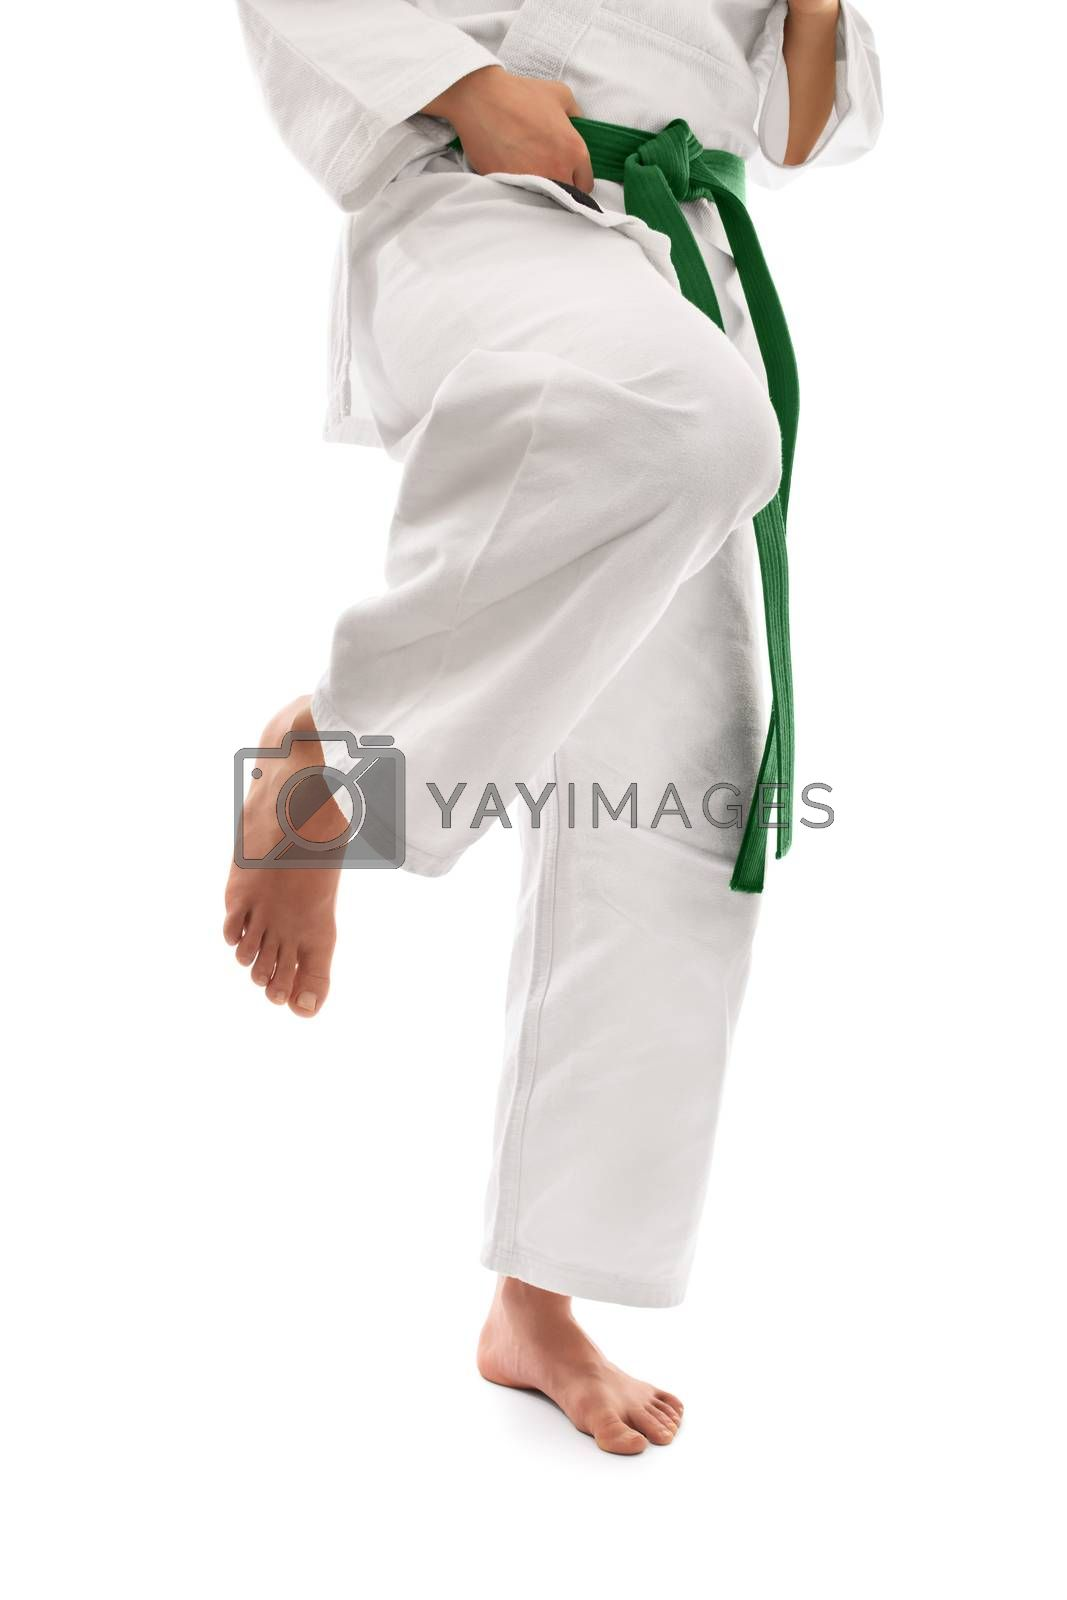 Close up shot of below the waist section of a girl in a kimono with green belt preparing for a knee kick, isolated on white background.